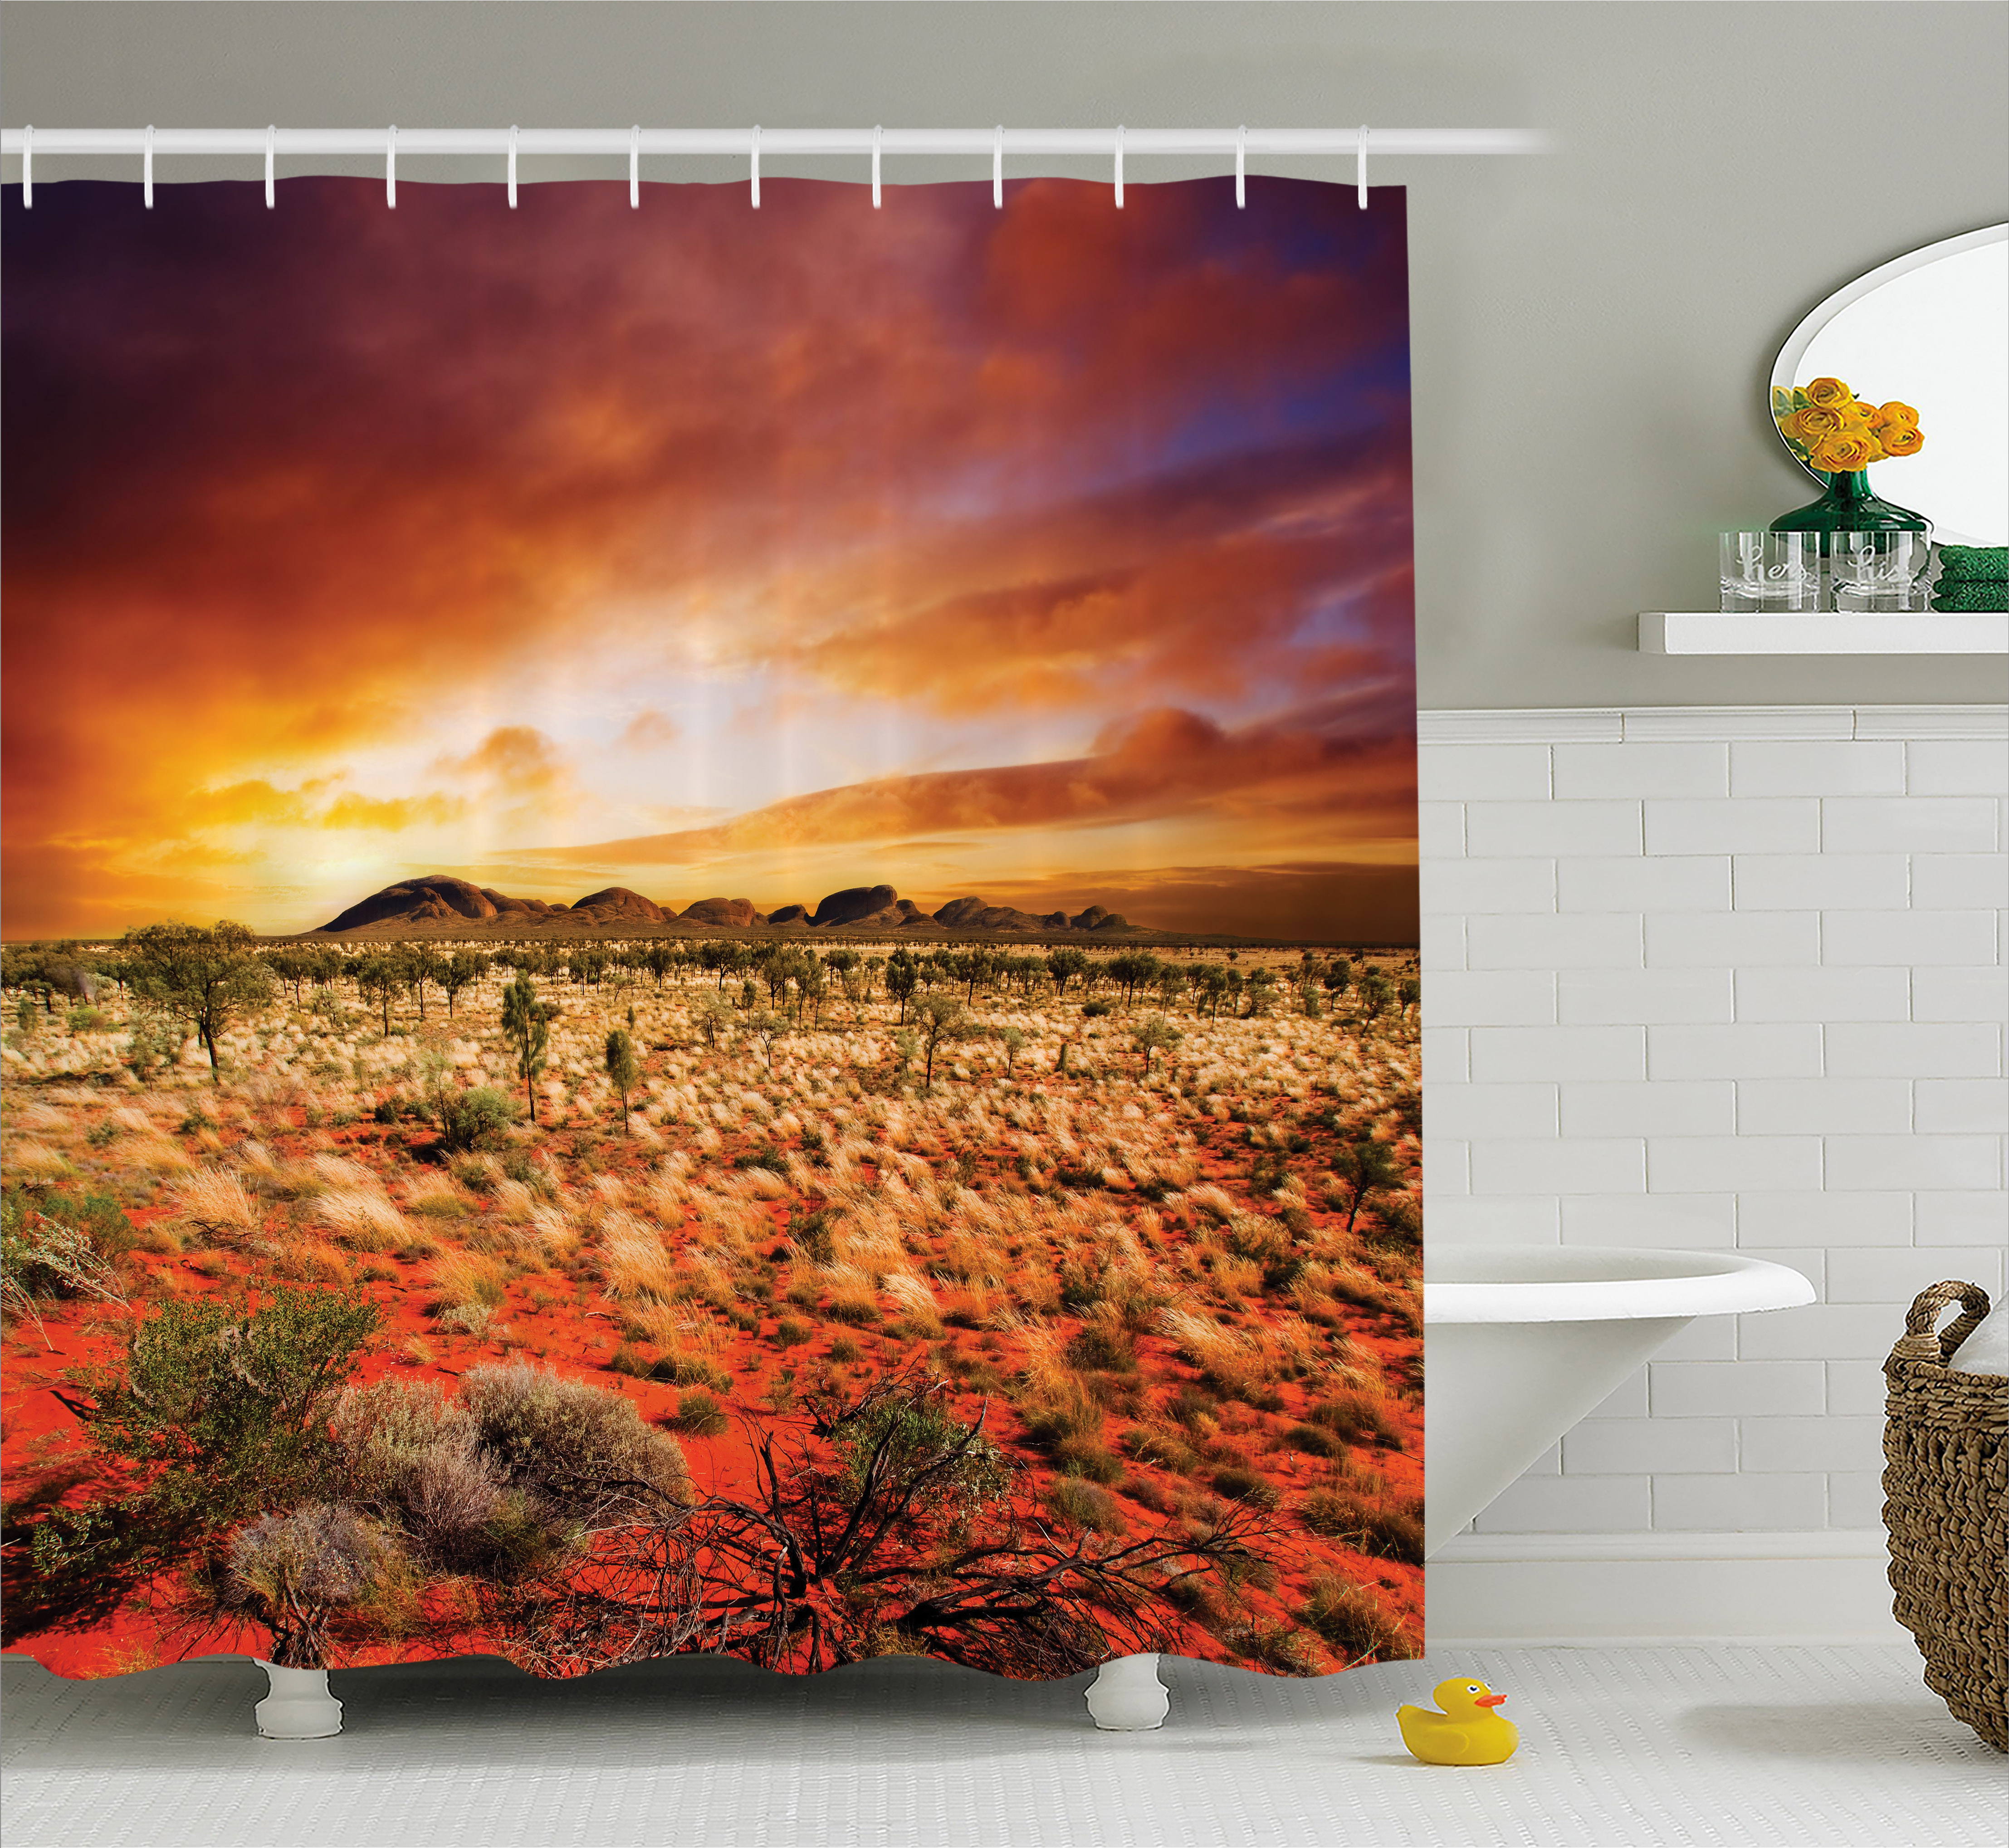 Desert Shower Curtain, Sunset Over Central Australian Landscape Dreamy  Dramatic Sky Scenic Nature, Fabric Bathroom Set With Hooks, 69W X 75L  Inches ...